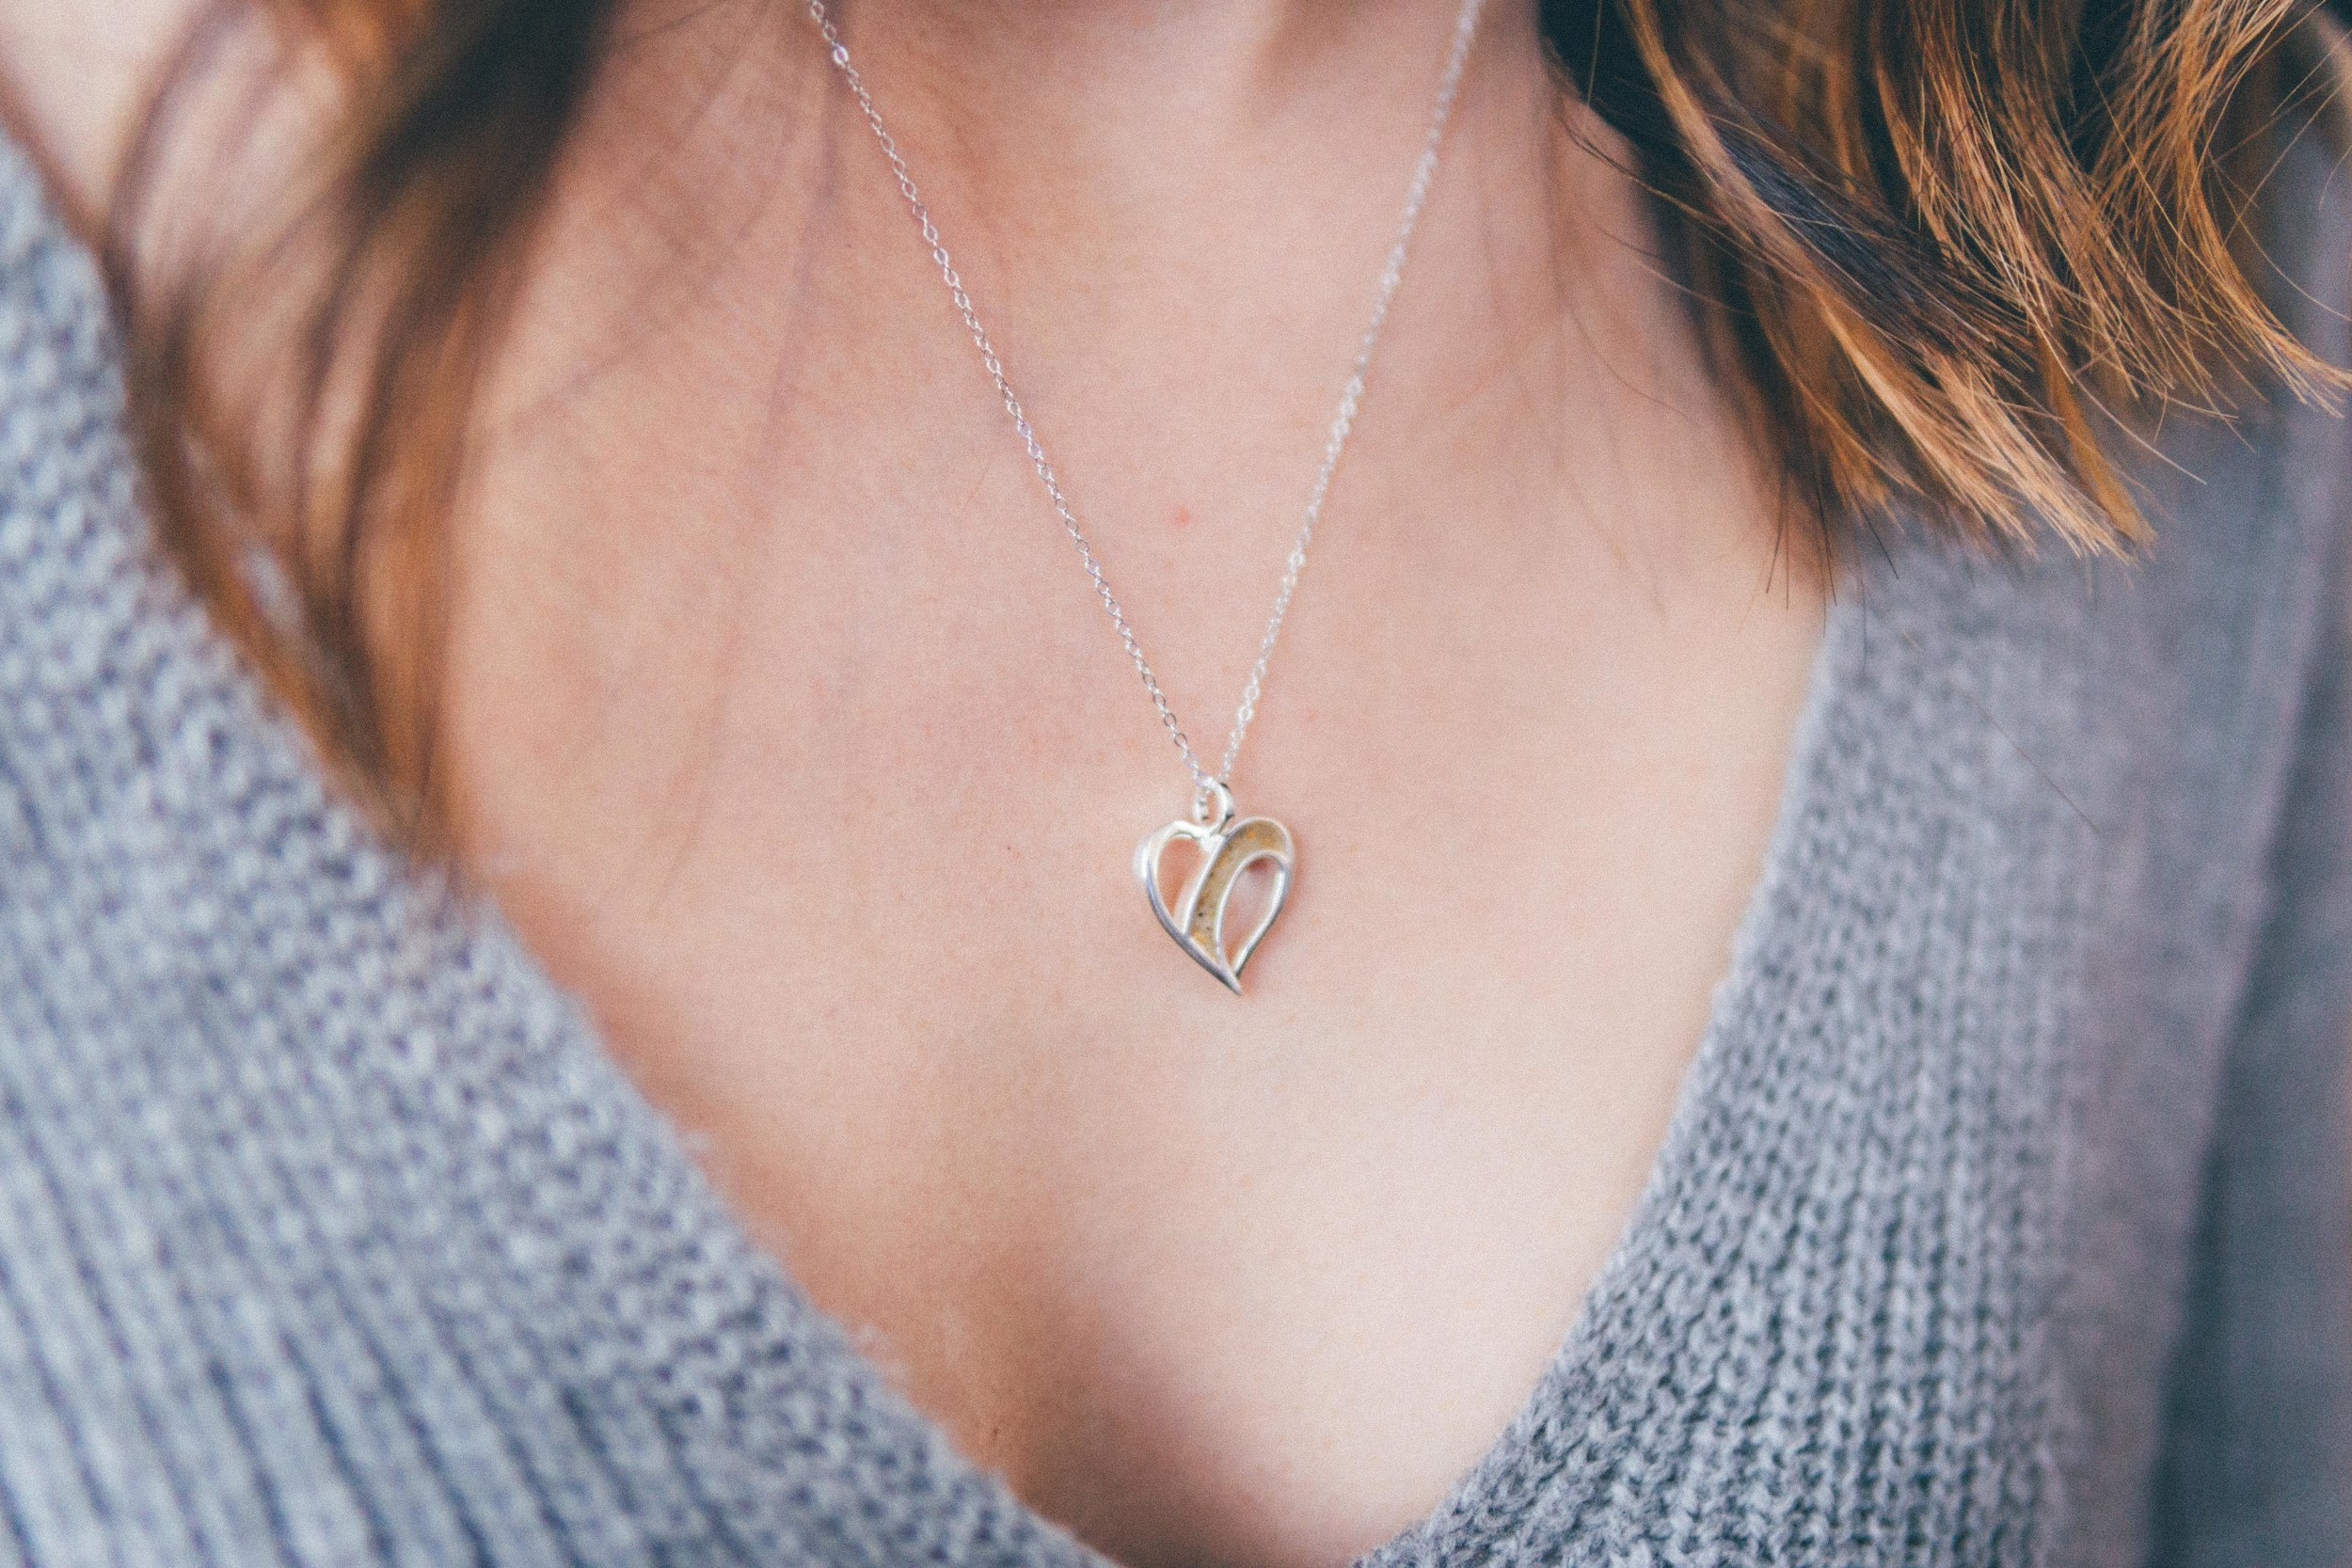 Dune Jewelry - Traveling Heart NecklaceMake the memories in your happy place last. Co-created by Jennie Garth, this piece of .925 sterling silver is handcrafted with your choice of sand, from thousands of locations across the globe.